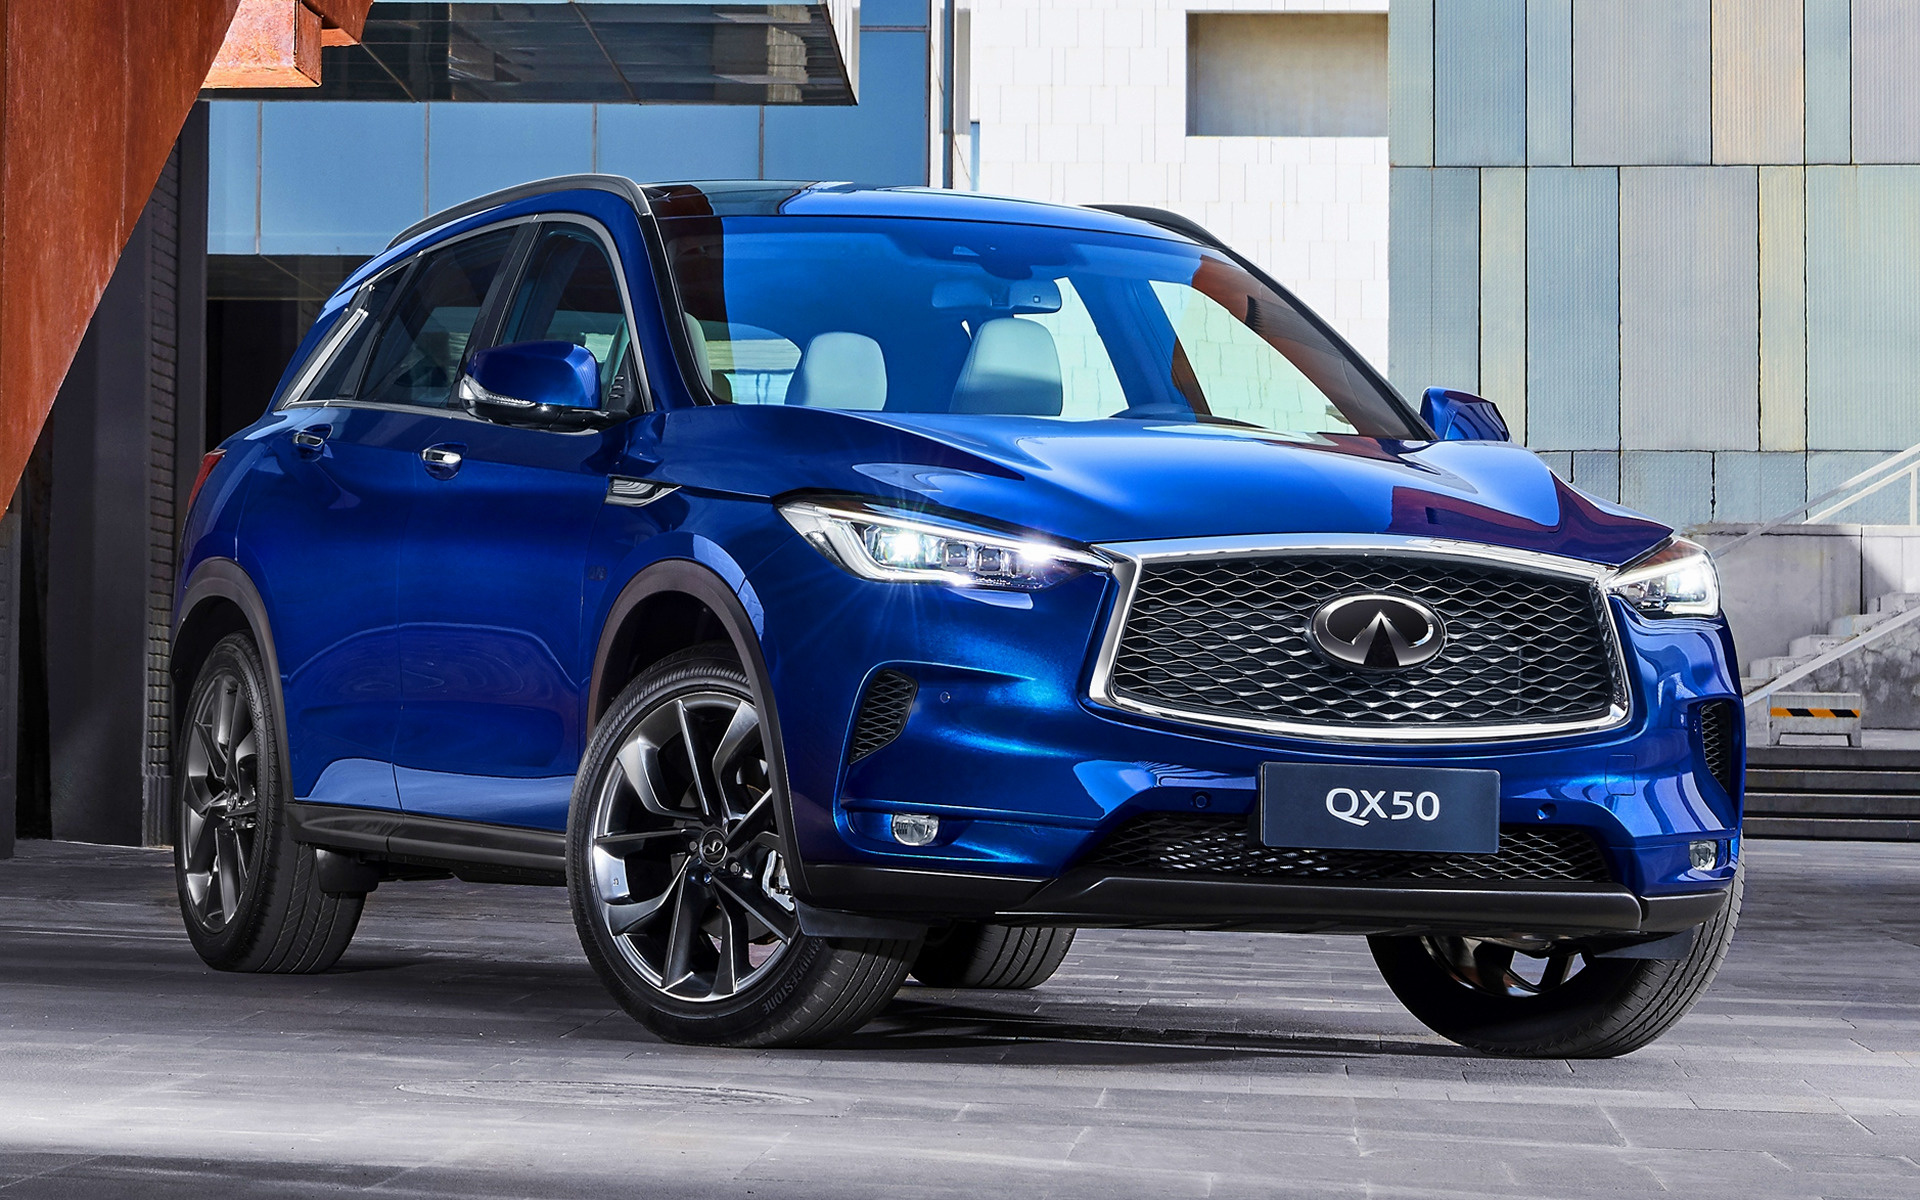 2019 Infiniti Qx50 Cn Wallpapers And Hd Images Car Pixel